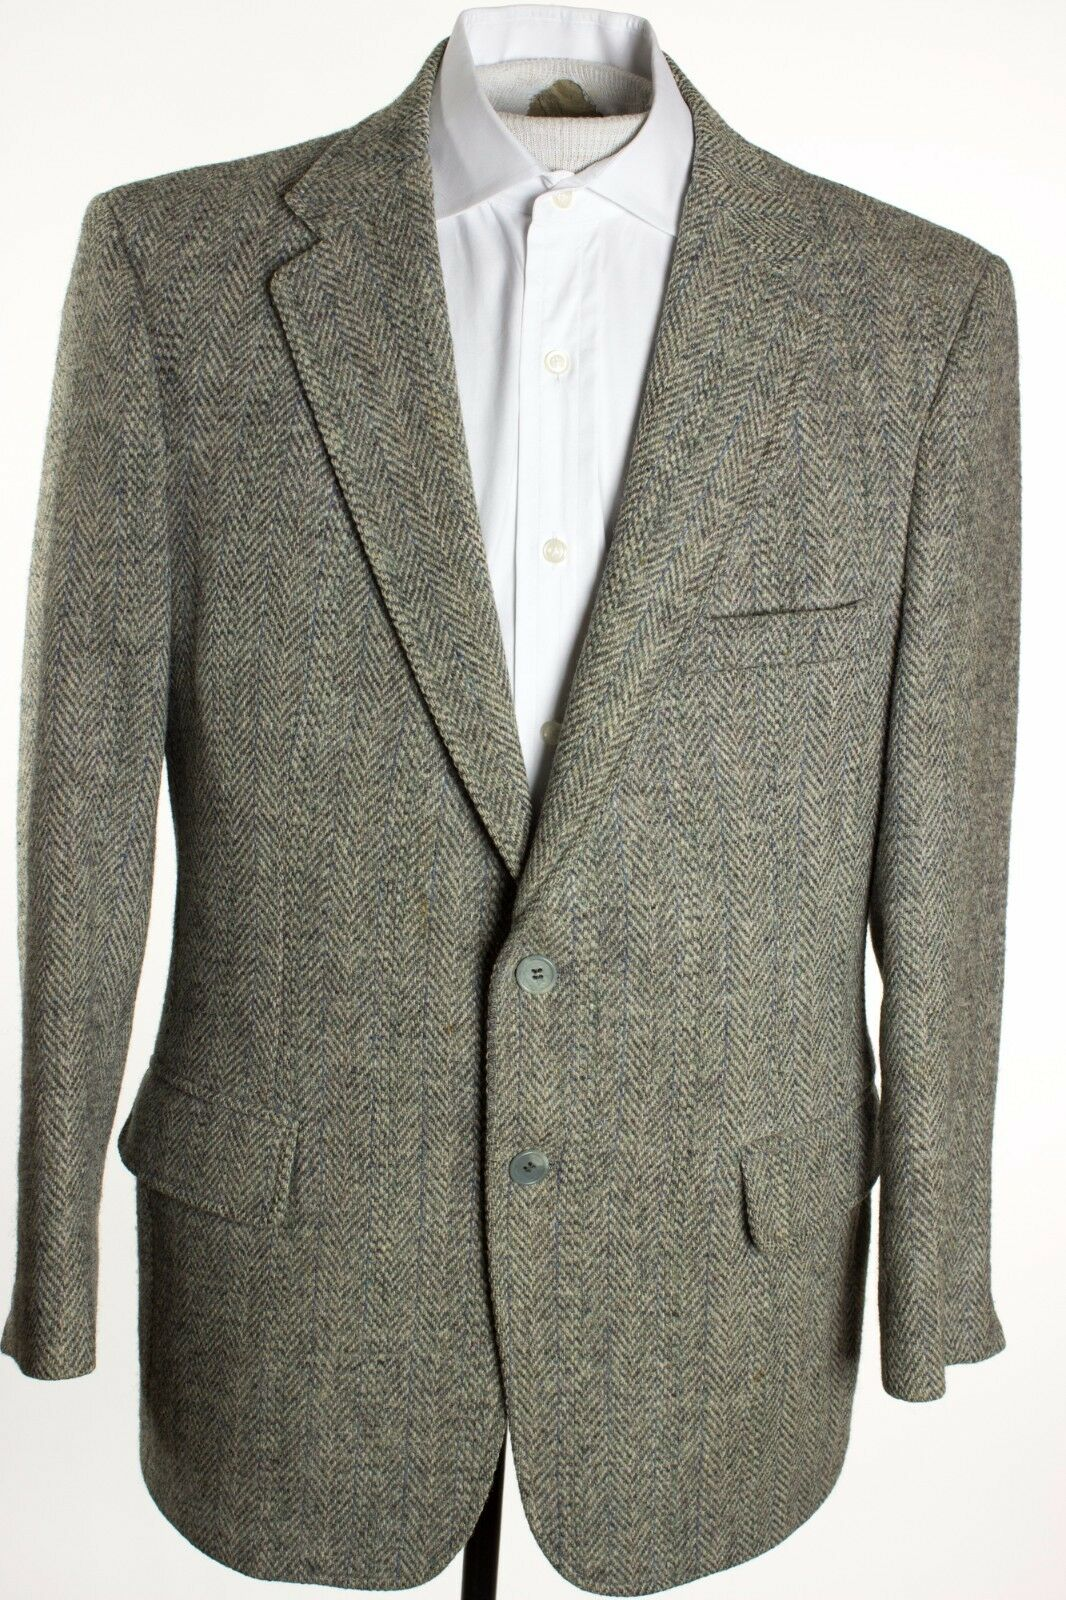 VTG Harris Tweed  Herren 40R grau Tweed Herringbone Sports Coat made in USA